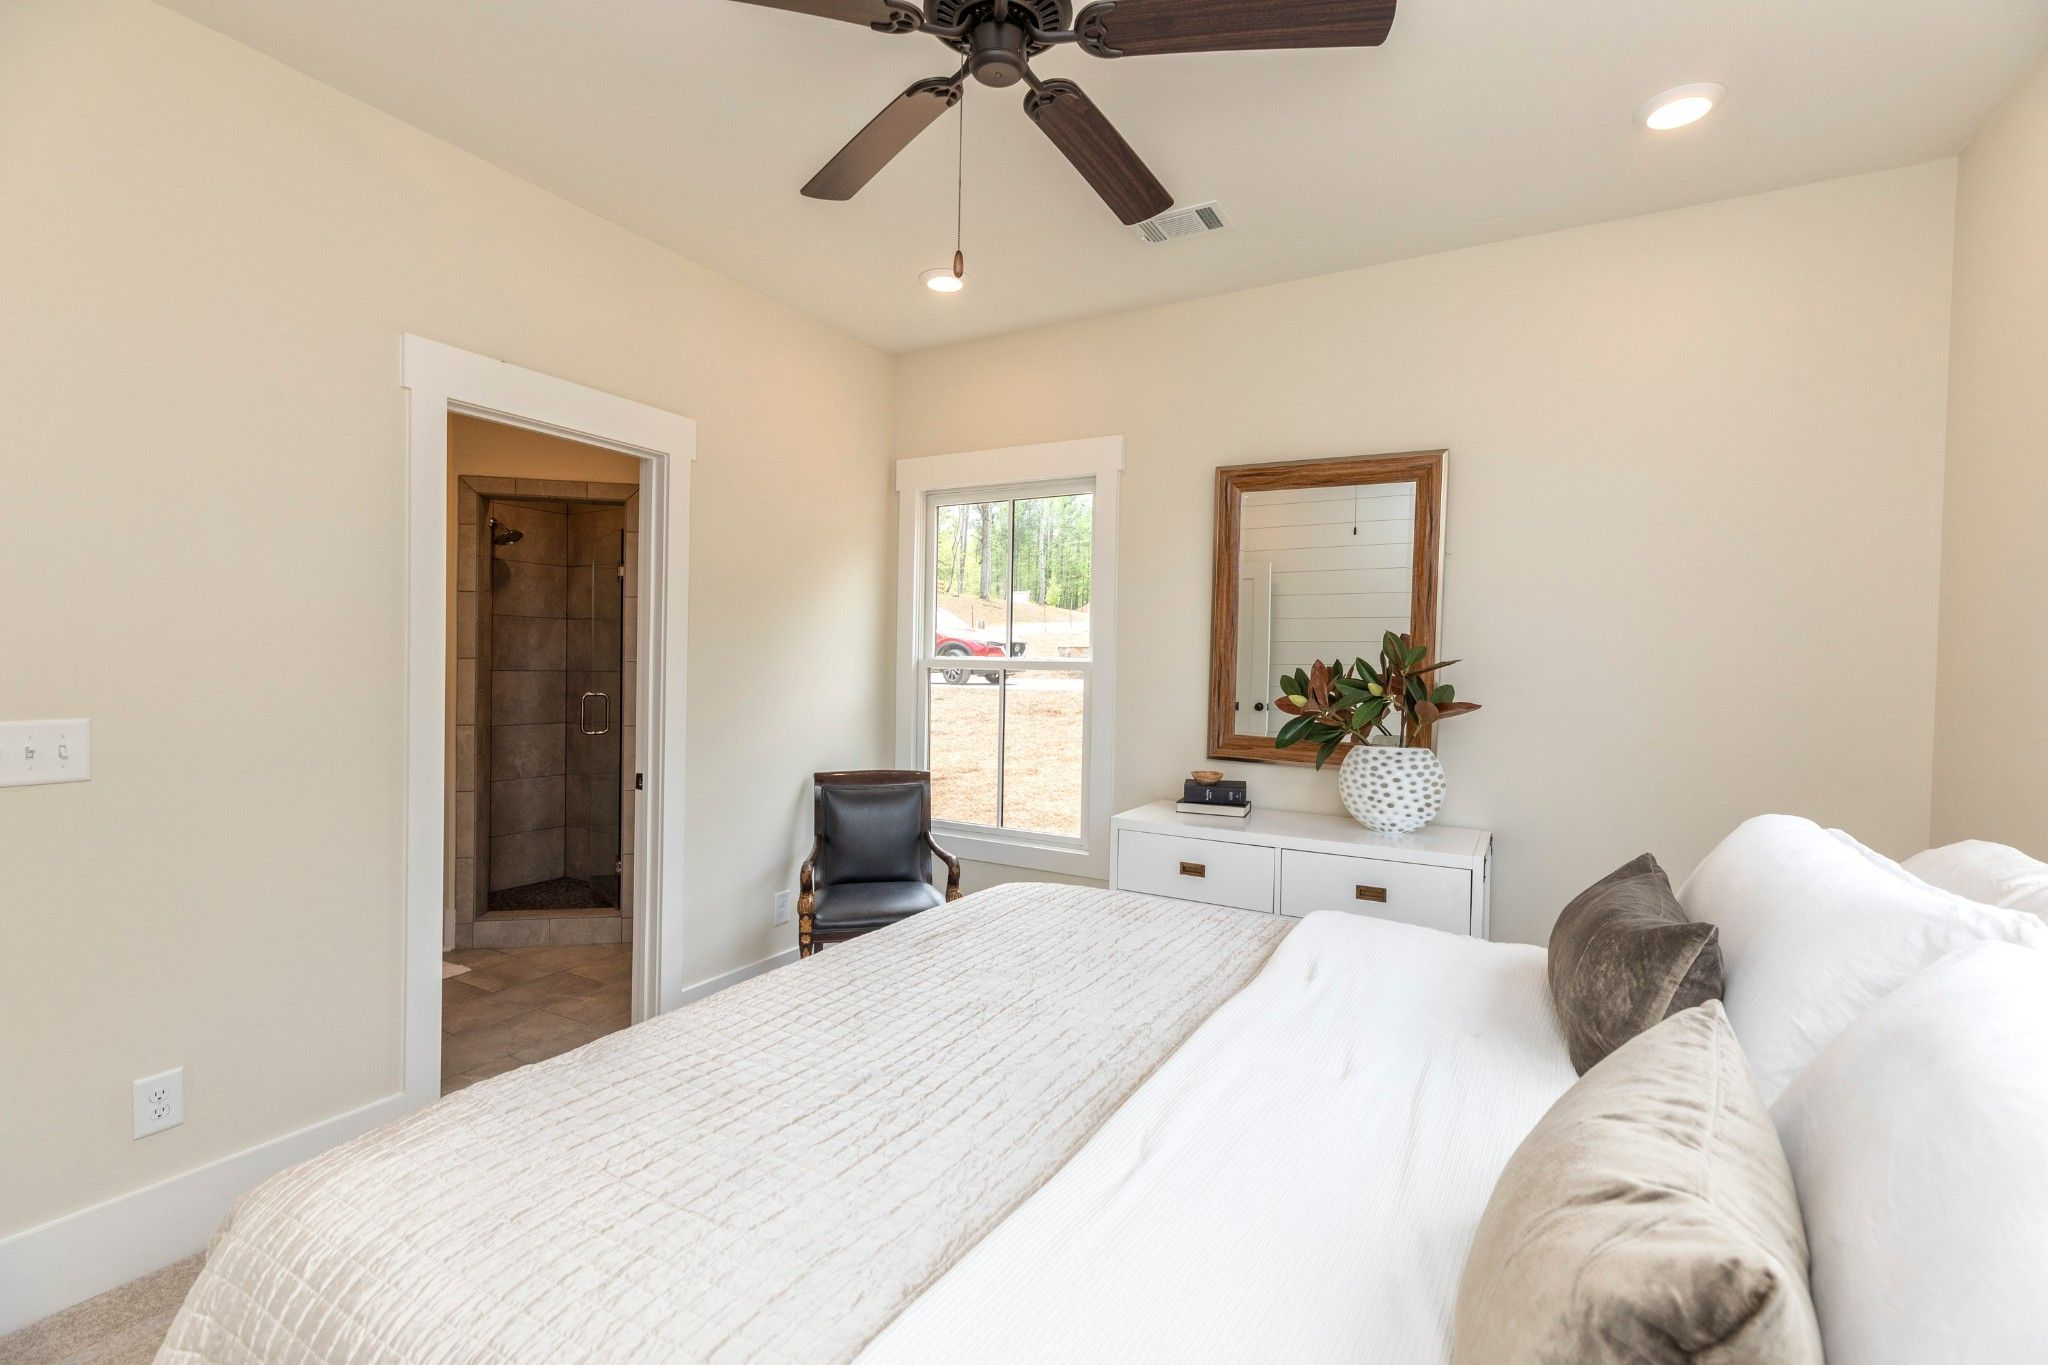 Bedroom featured in the Willow Interior By Harris Doyle Homes Inc in Montgomery, AL